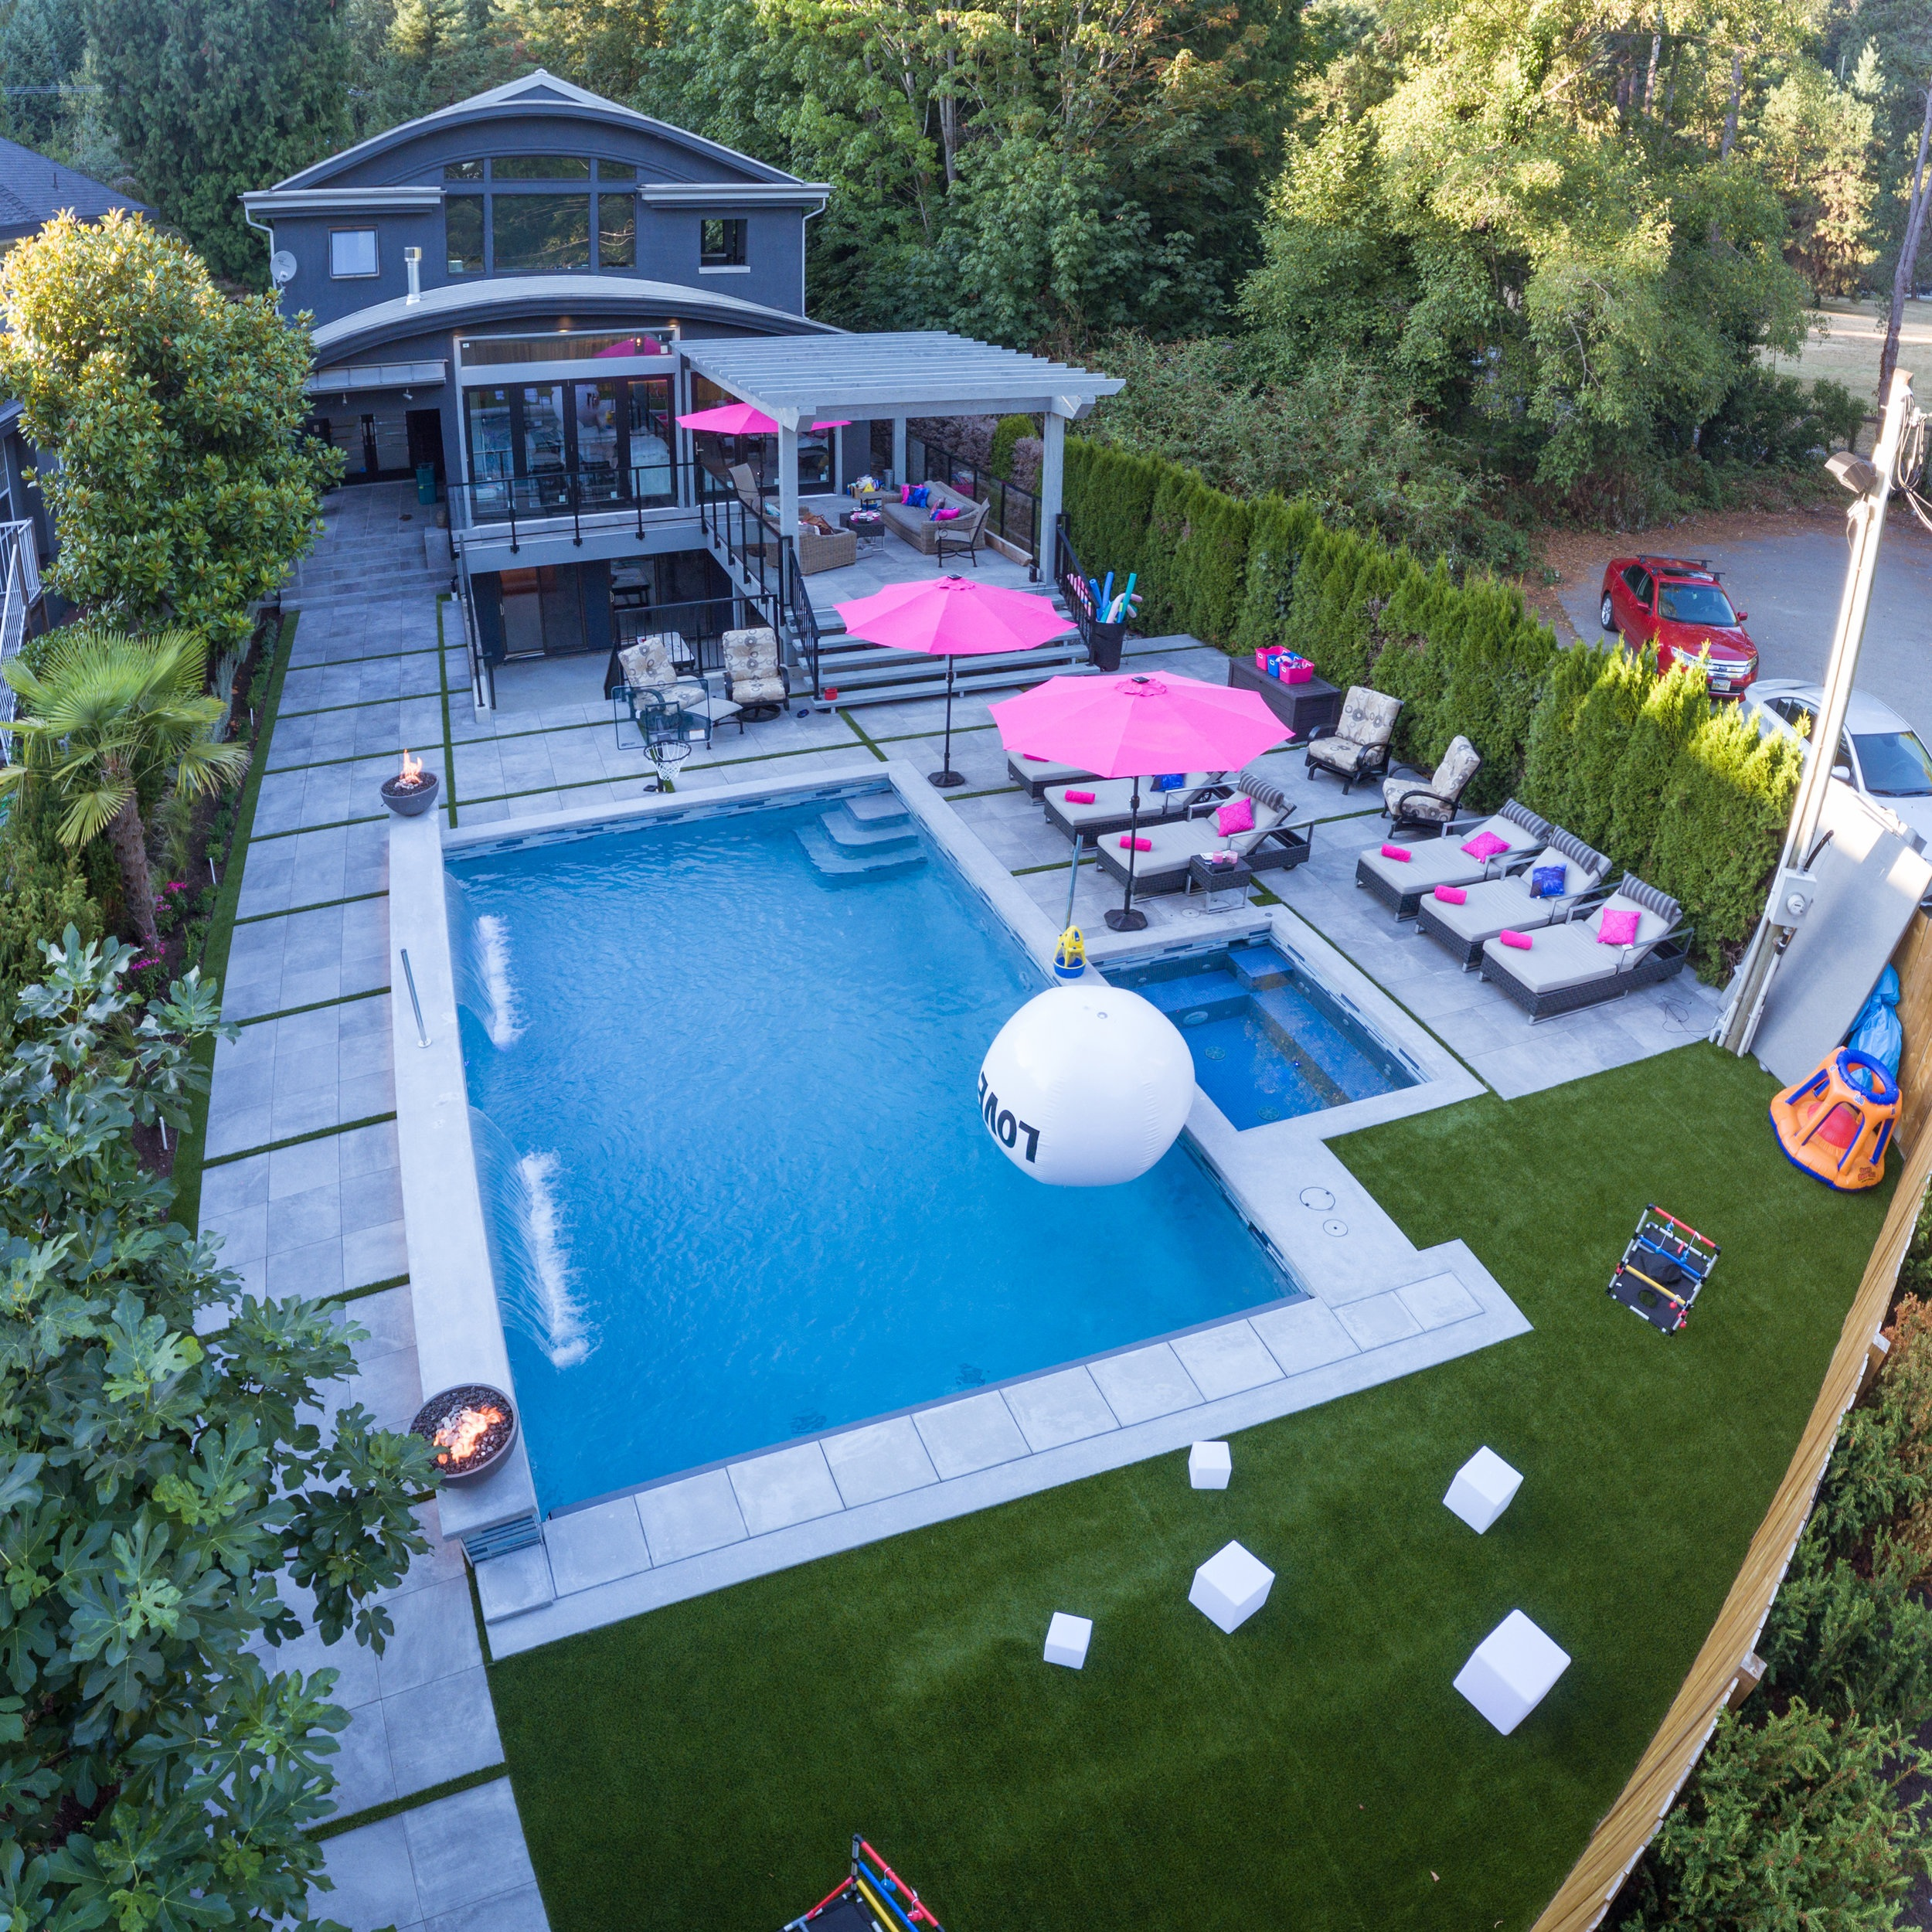 Residential Synthetic Grass - It is not uncommon for homeowners to feel overwhelmed with all there is to do to maintain their home. Spending time maintaining your yard is a tedious task. Converting your residential property to synthetic grass is a life changer. Own a beautiful yard without the fuss. Most importantly, our synthetic turf is safe for pets and kids.